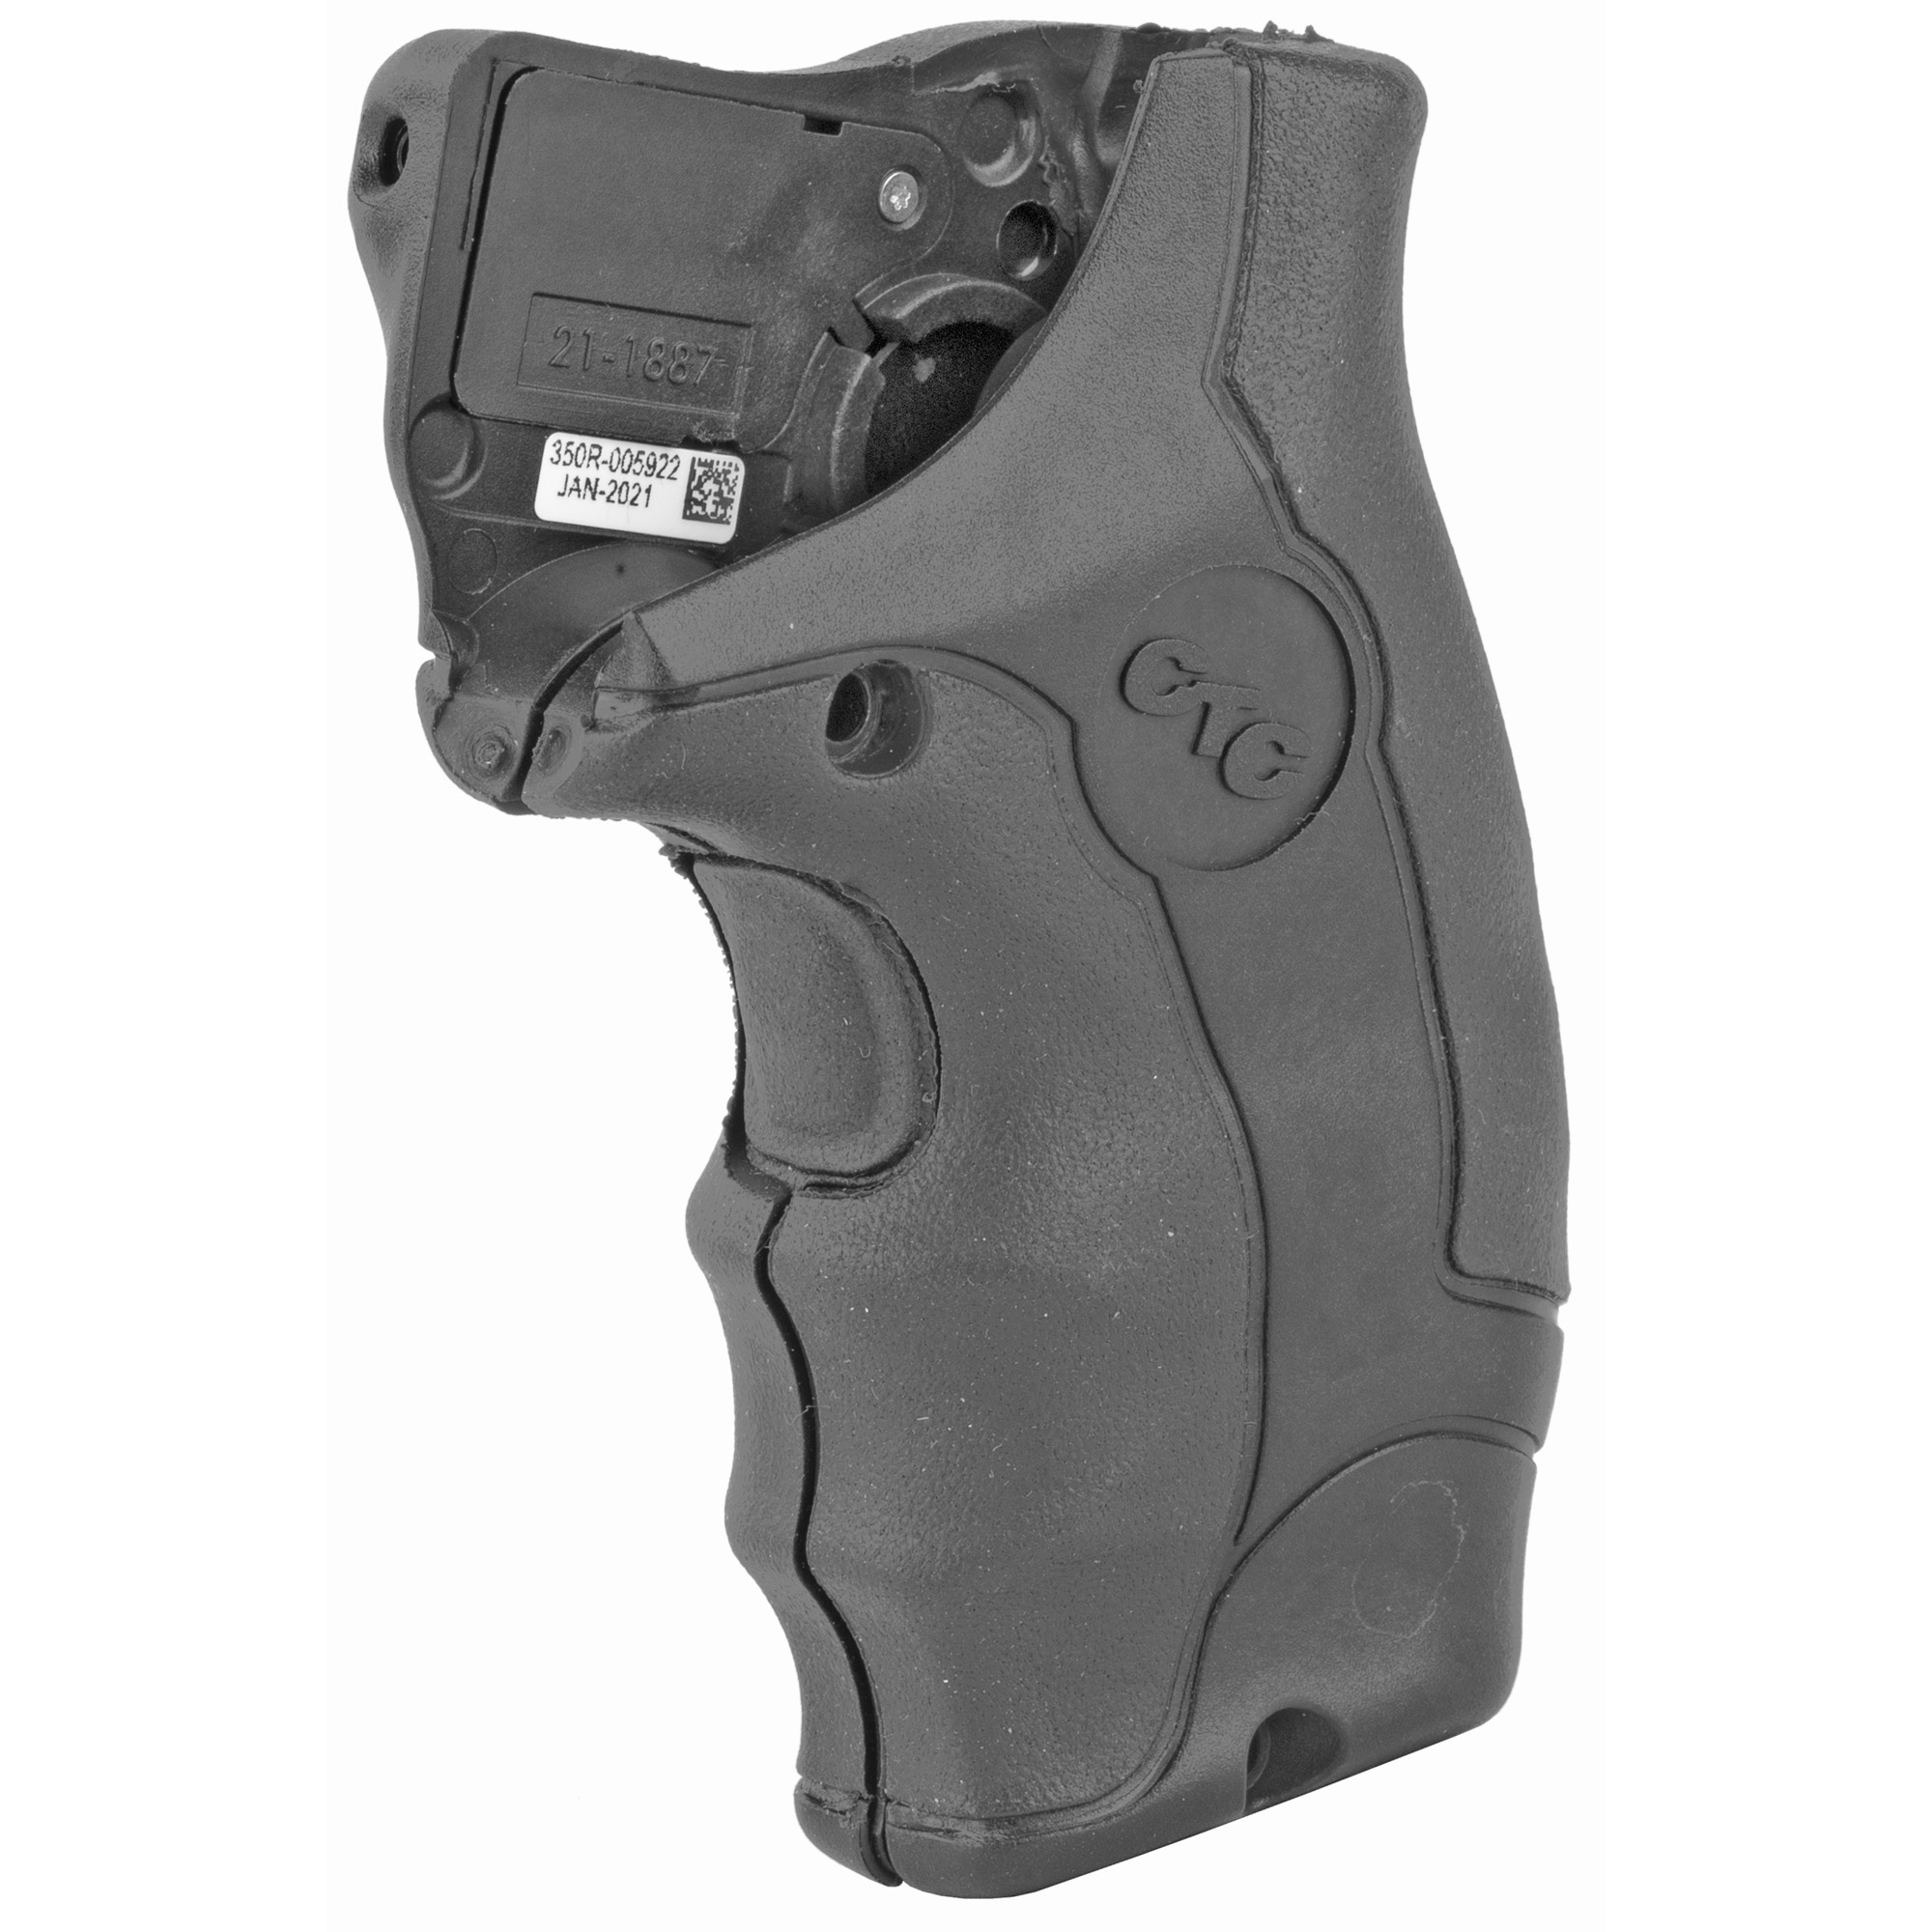 """LG-350 Lasergrips(R) are an enhanced laser sighting option for Smith & Wesson J-Frame (Round Butt) Revolvers offering excellent comfort for shooters. This model features a front laser activation button"""" and boasts over 4 hours of battery life from (2) 2032 Lithium batteries. User-installed in moments by replacing factory grips"""" the unit is completely user-adjustable for windage and elevation. LG-350 Lasergrips feature the Crimson Trace ShockStop(TM) system"""" which couples soft"""" anti-vibration material and a cushioned grip to reduce recoil while increasing shooter comfort and accuracy."""